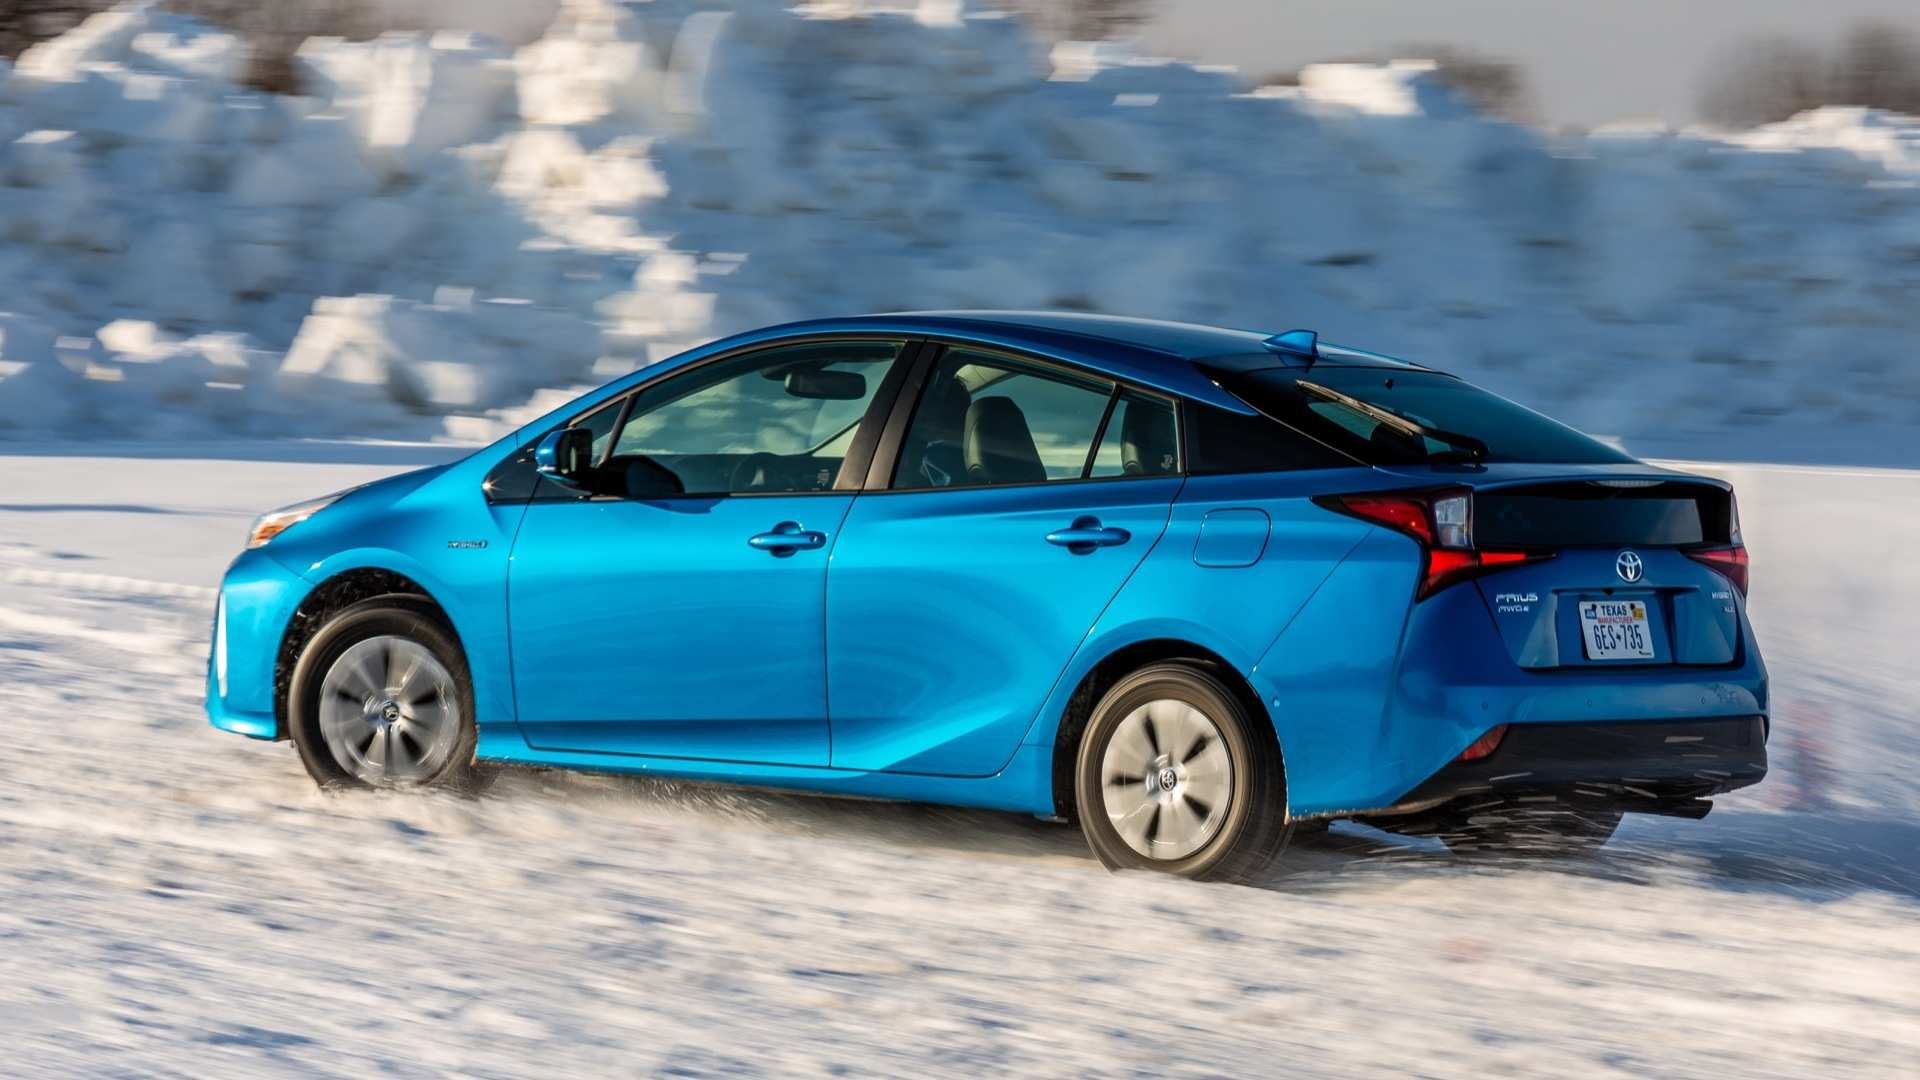 95 The 2019 Toyota Prius Speed Test with 2019 Toyota Prius